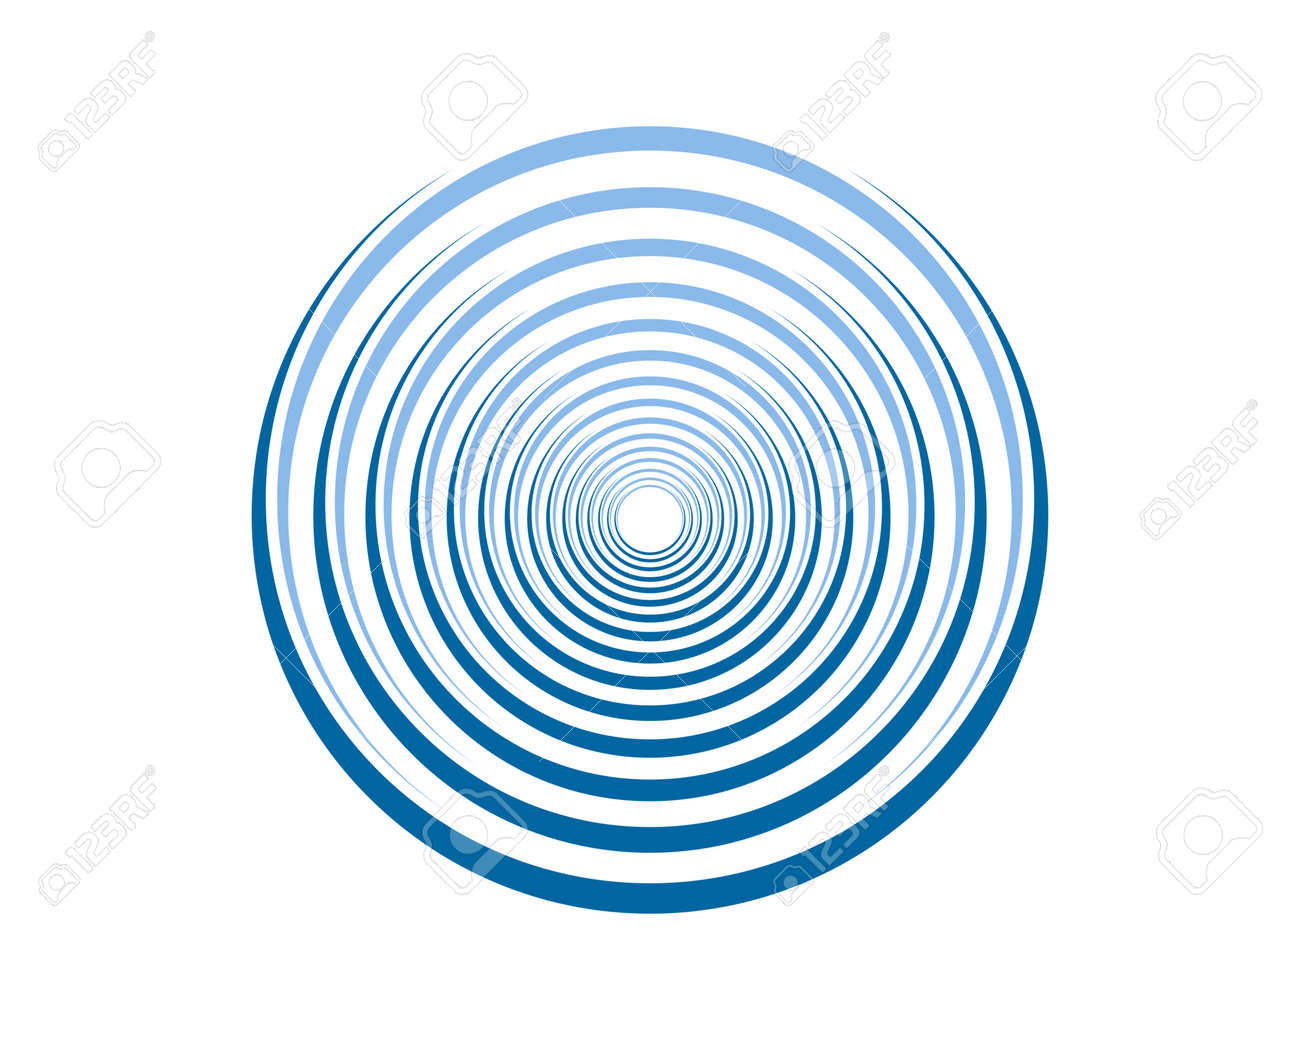 Ripple effect with circular blue - 159638582